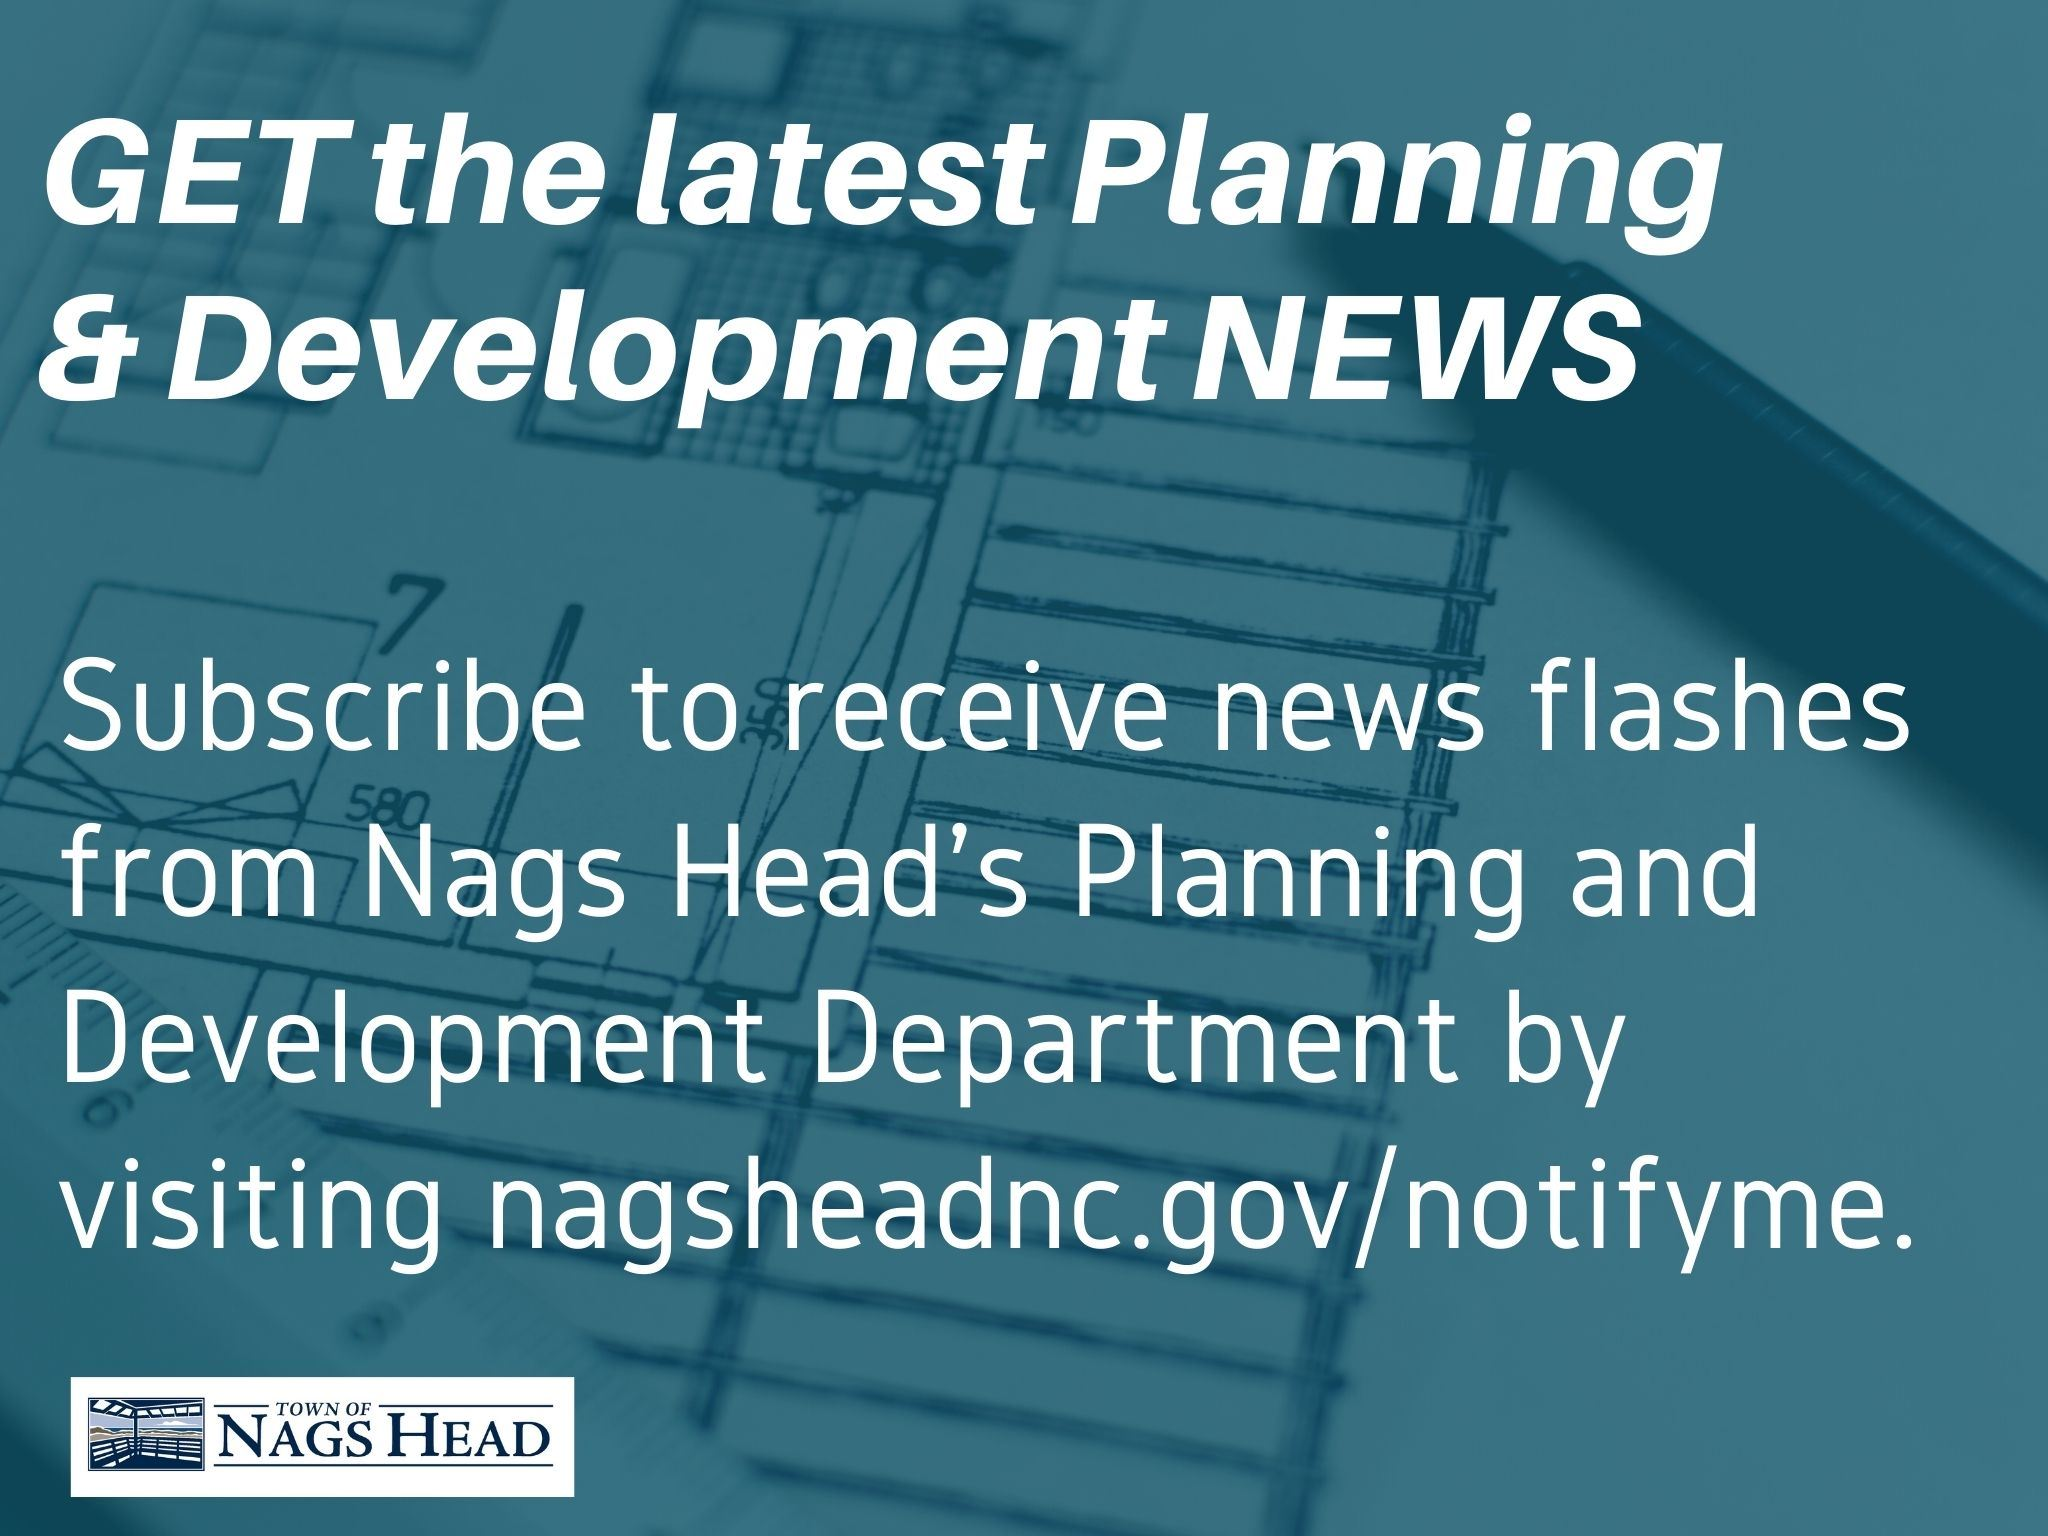 Get the latest Planning and Development News